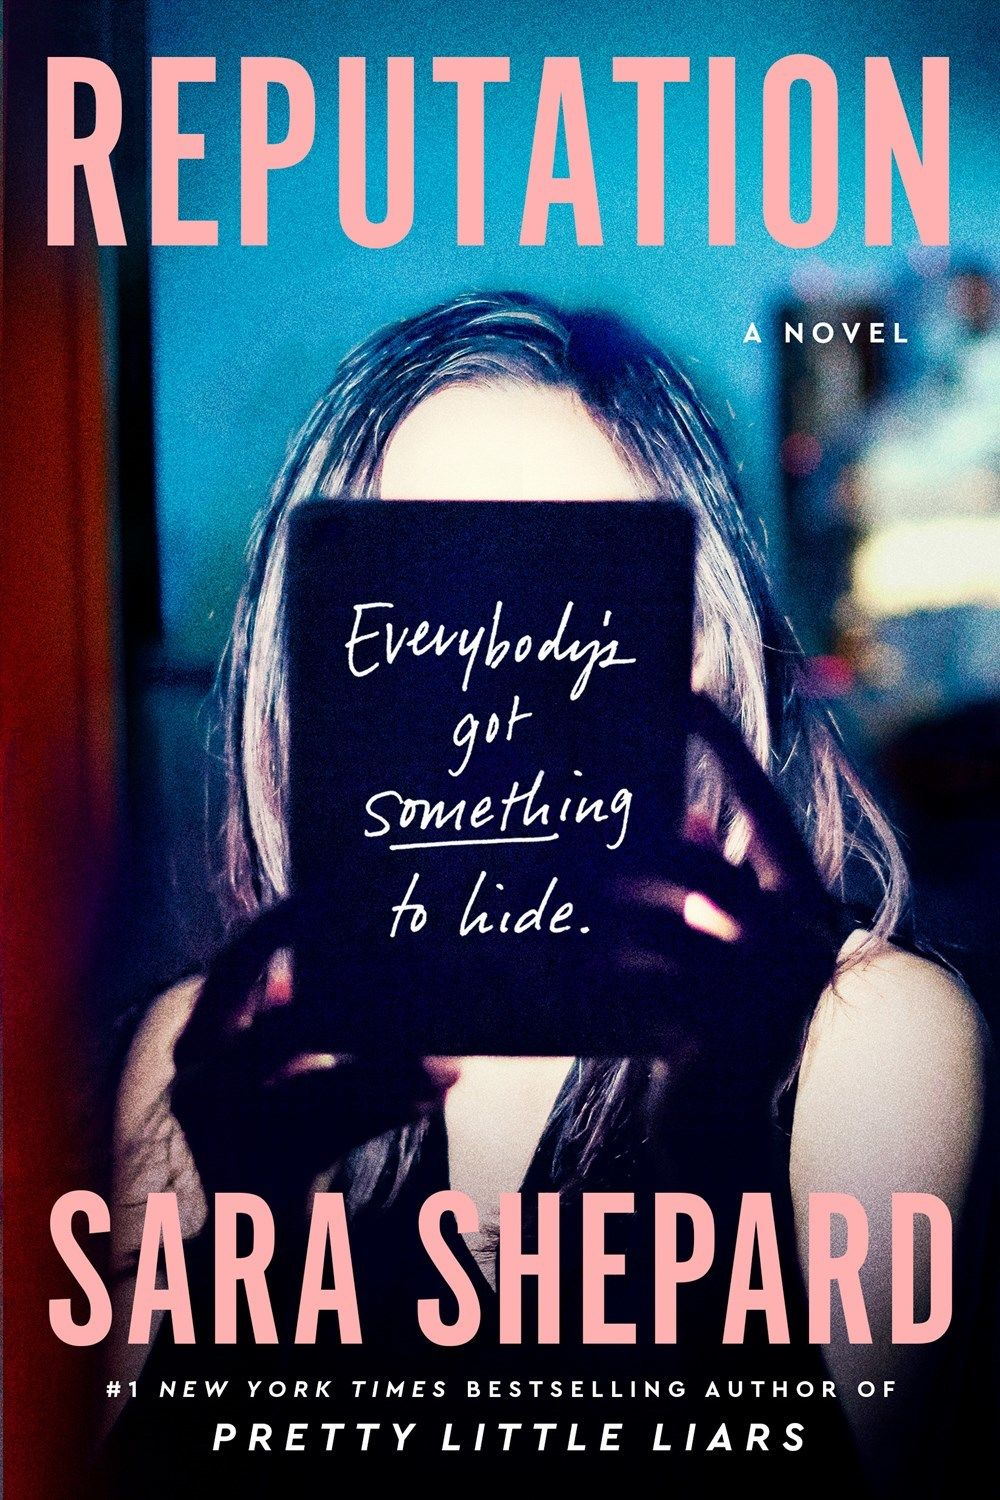 [PDF] Reputation by Sara Shepard (With images) Good new